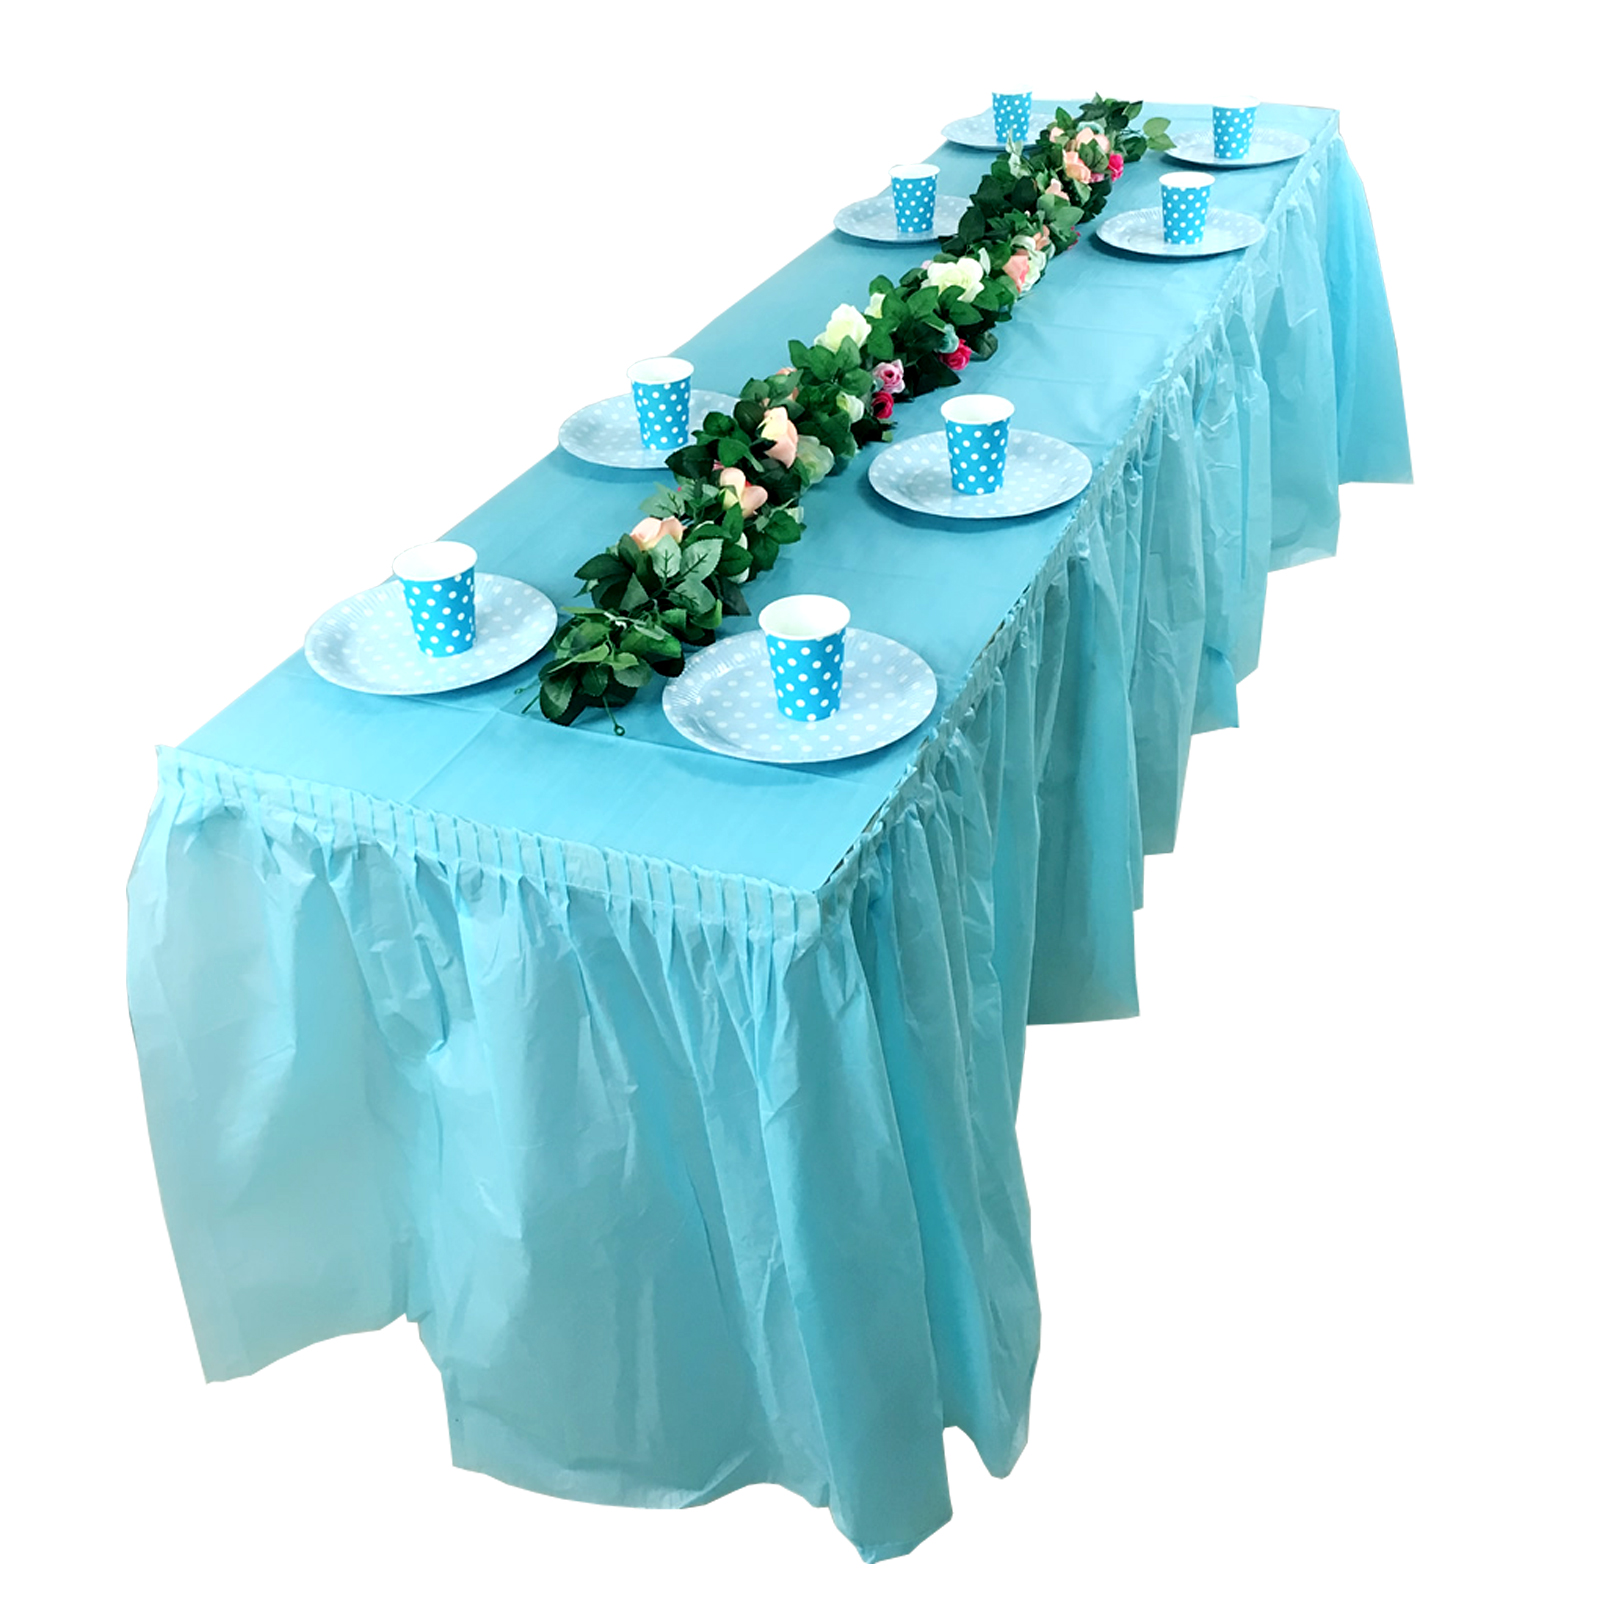 Plastic Disposable Solid Color Tablecloth Table Skirt Rectangle Round Dining Table Cover For Baby Shower Birthday Wedding Party